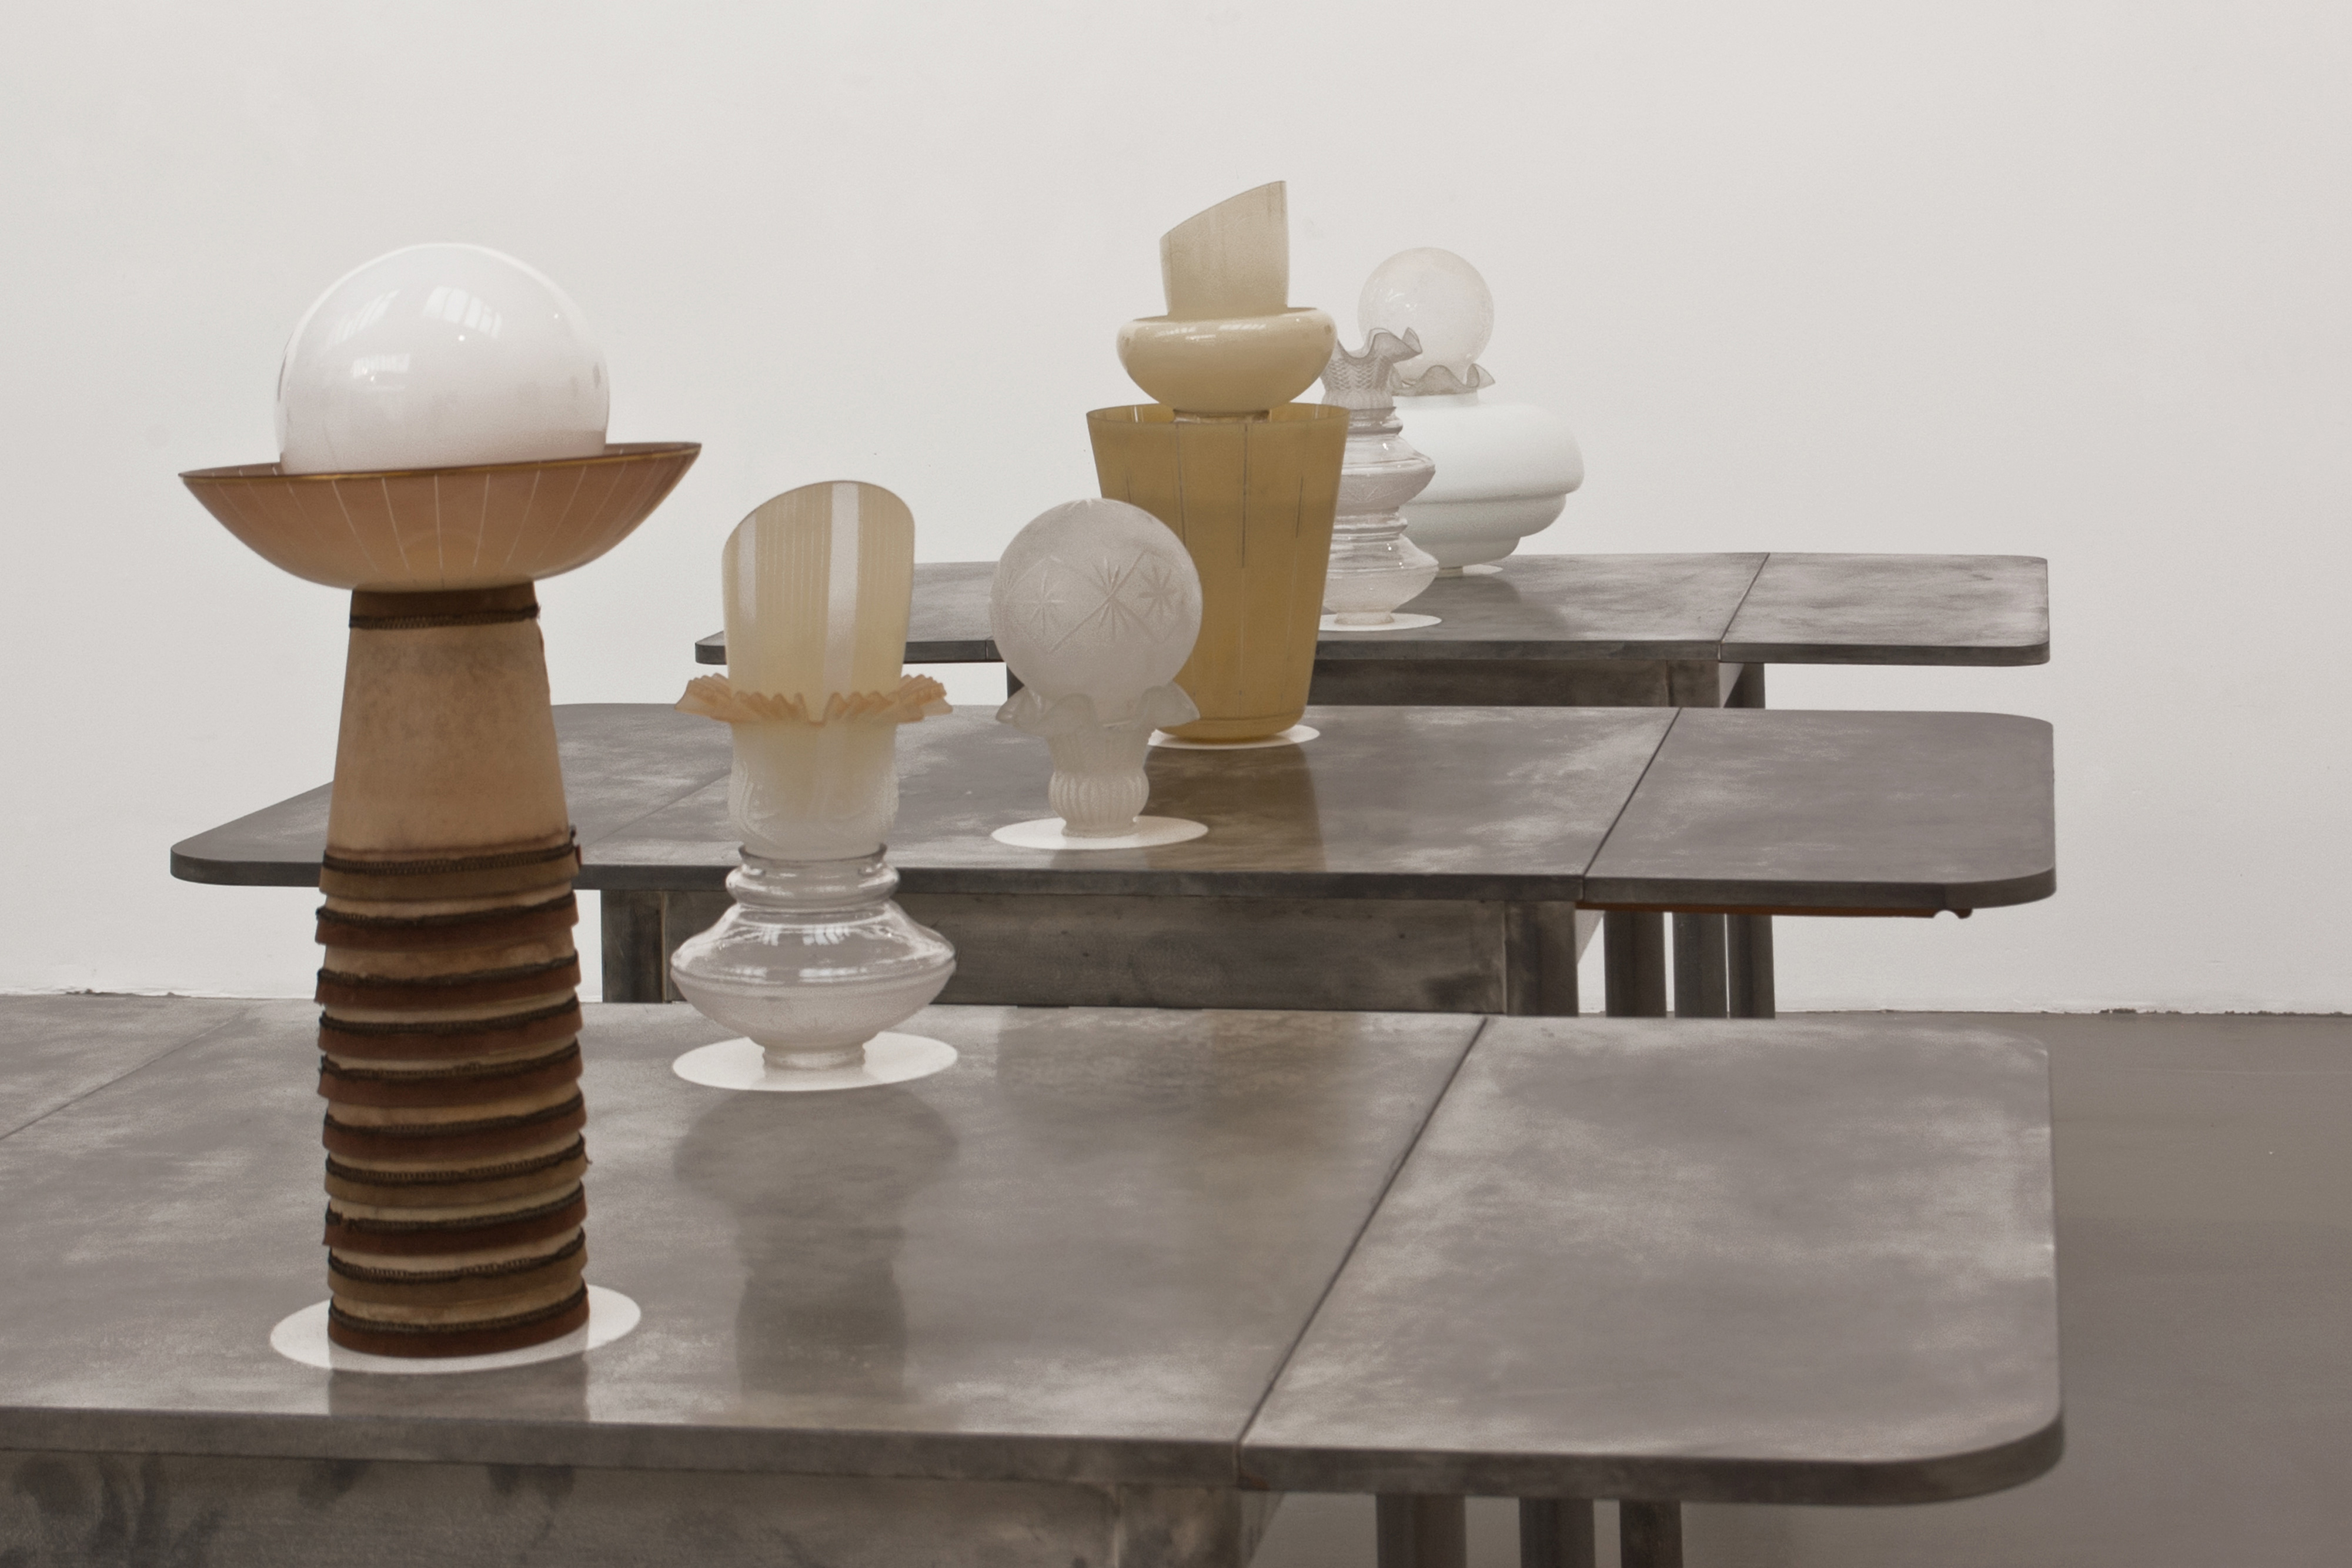 Galerie Barbara Thumm \ Fiona Banner, Marcus Becker, Diango Hernández – Group show \ Dining at Eight (2009)